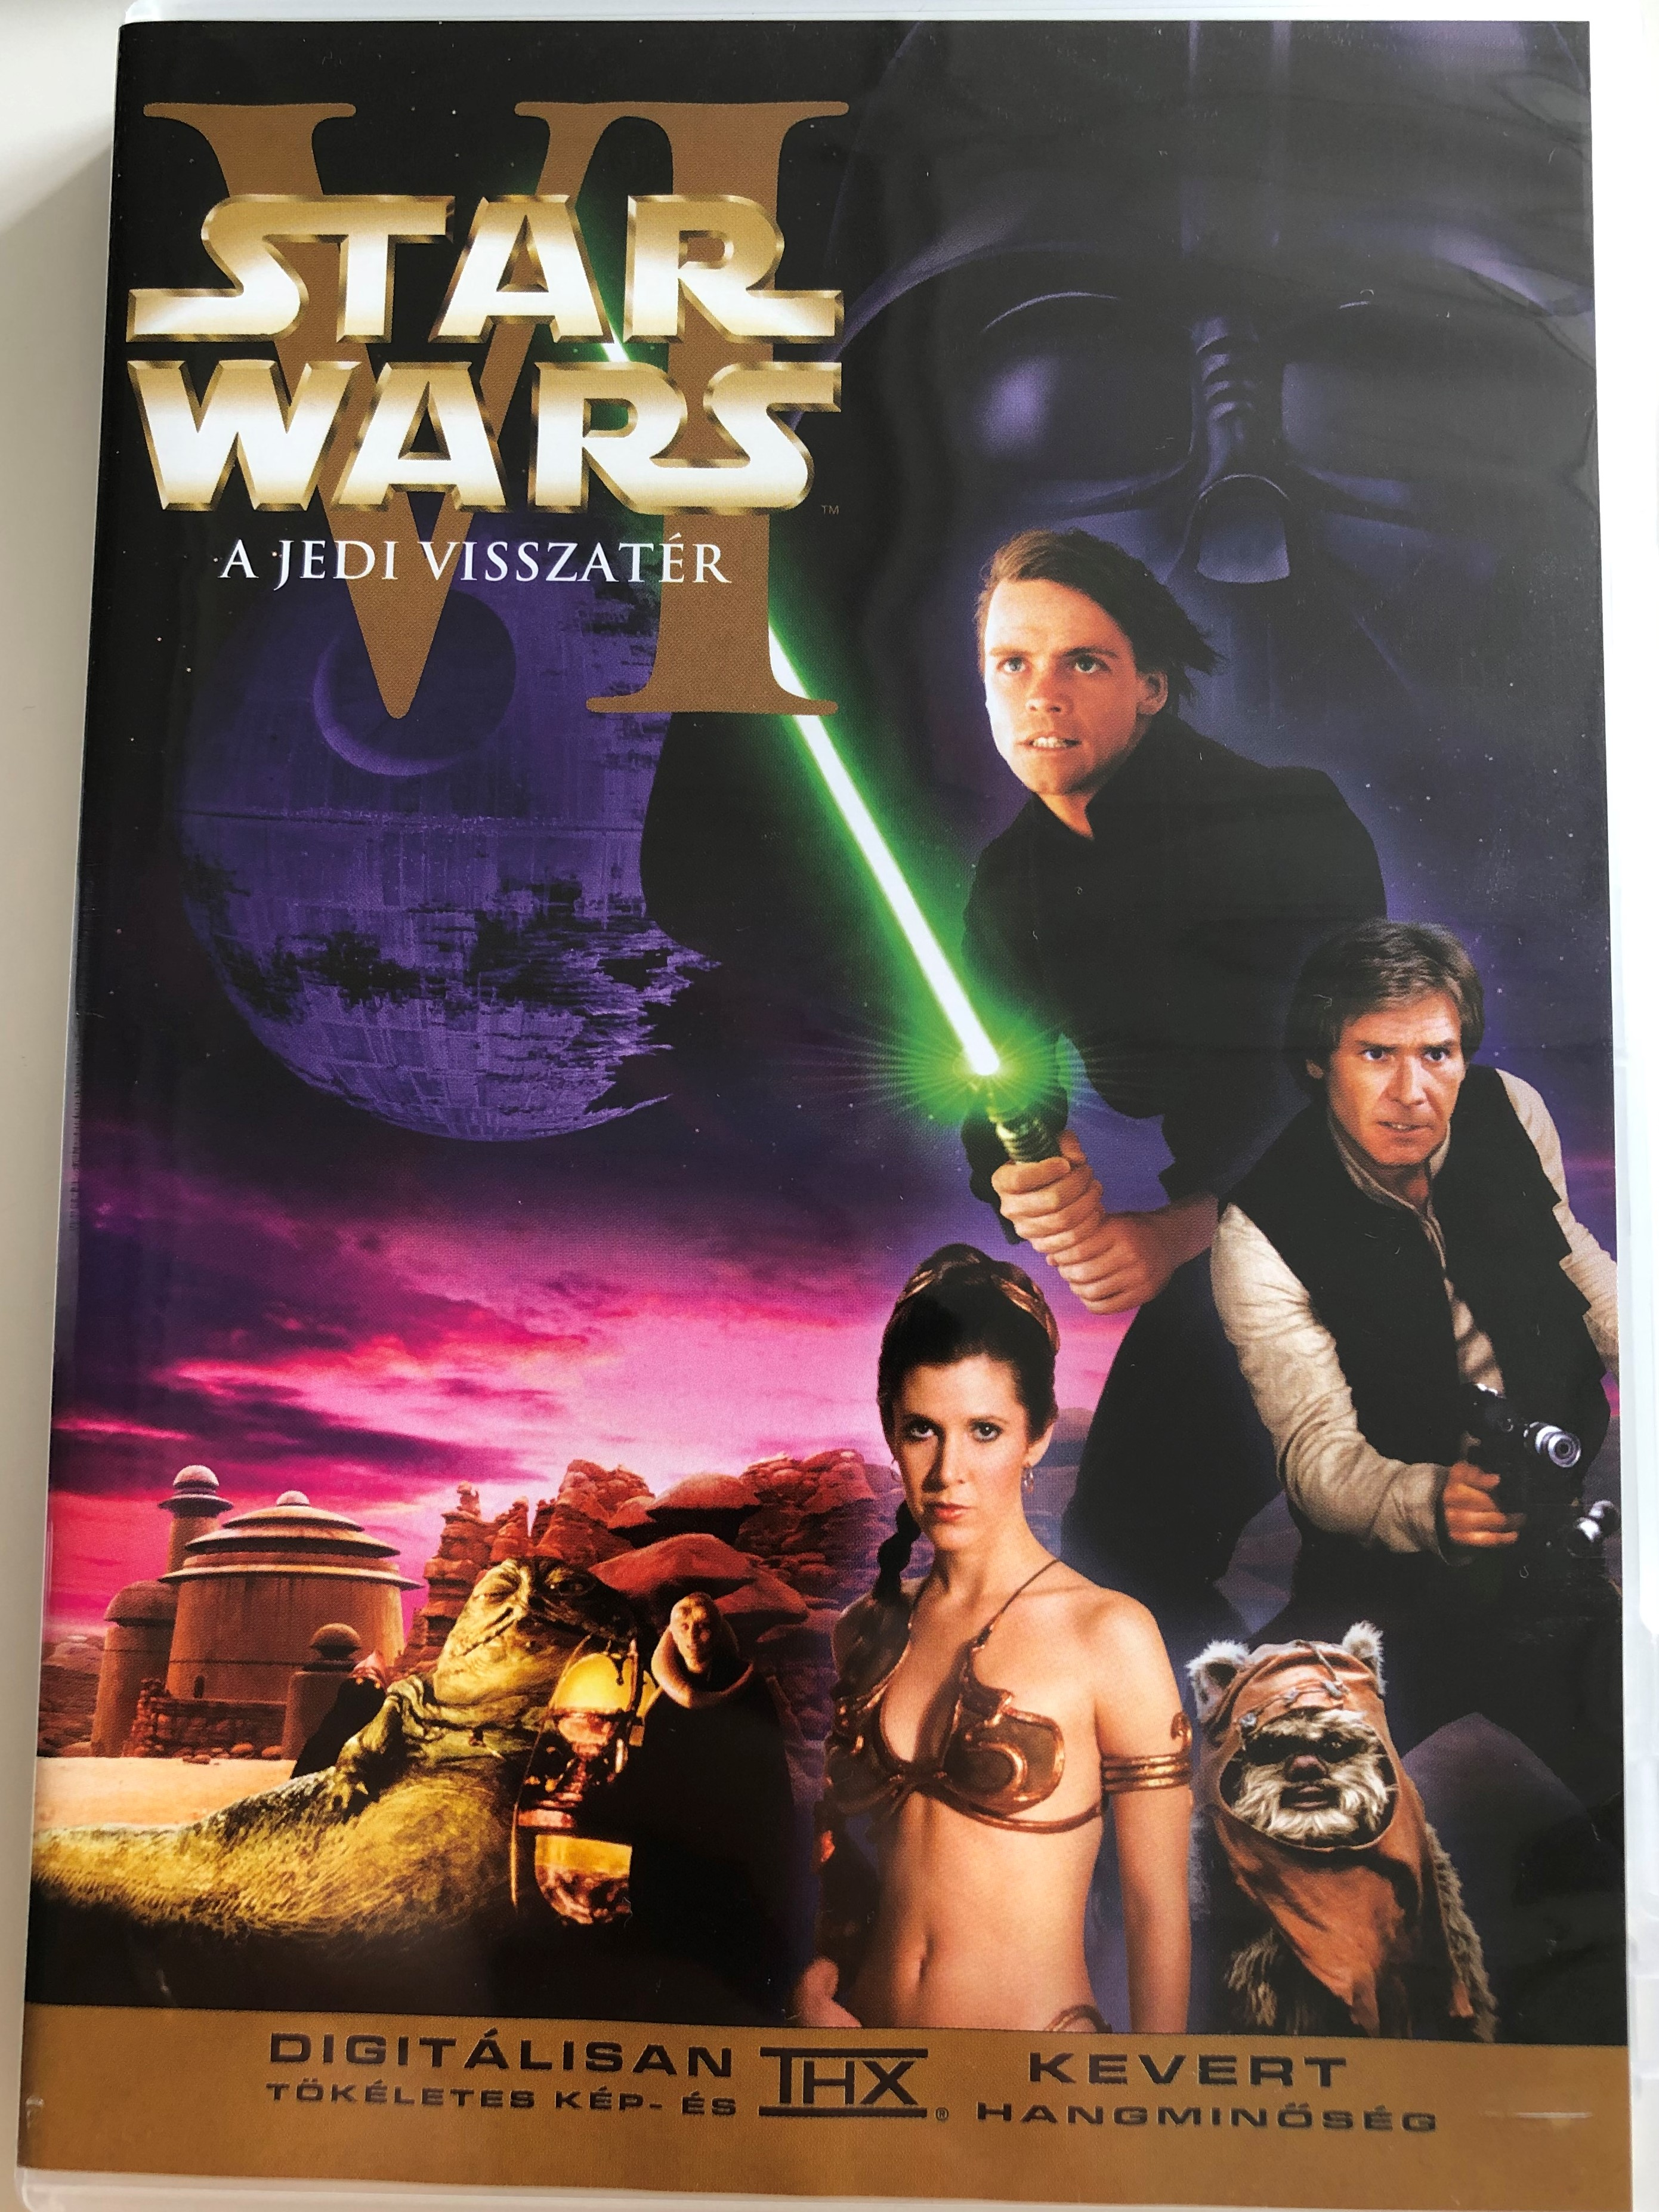 star-wars-episode-vi-return-of-the-jedi-dvd-1983-star-wars-vi-a-jedi-visszat-r-directed-by-richard-marquand-starring-mark-hamill-harrison-ford-carrie-fisher-billy-dee-williams-anthony-daniels-david-prowse-1-.jpg